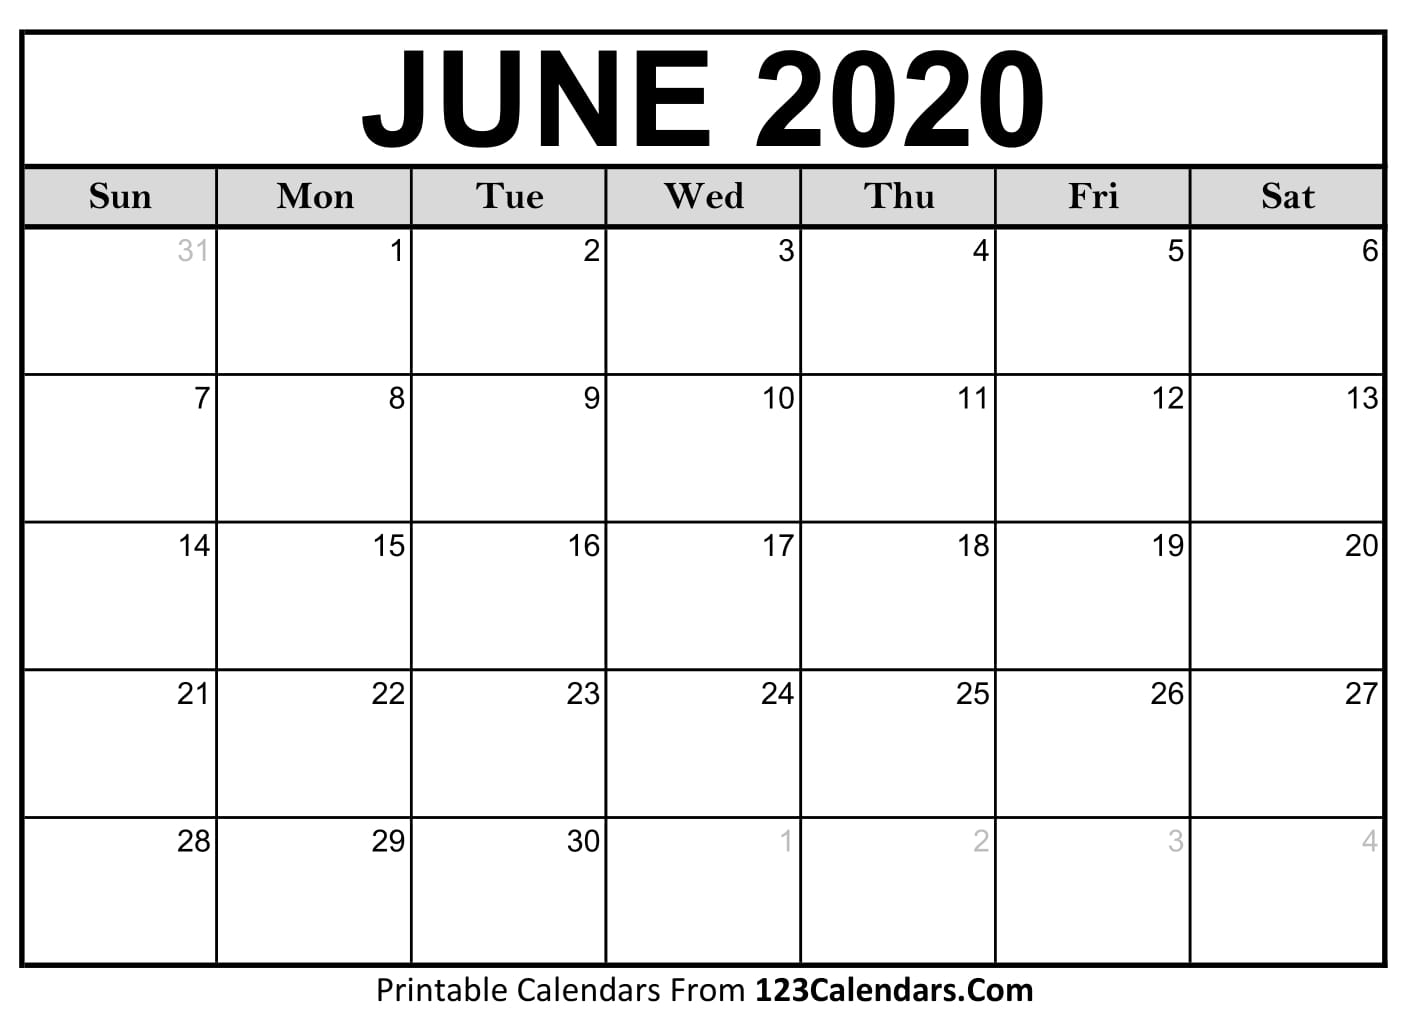 June 2020 Printable Calendar | 123Calendars regarding Printable June 2020 Calendar